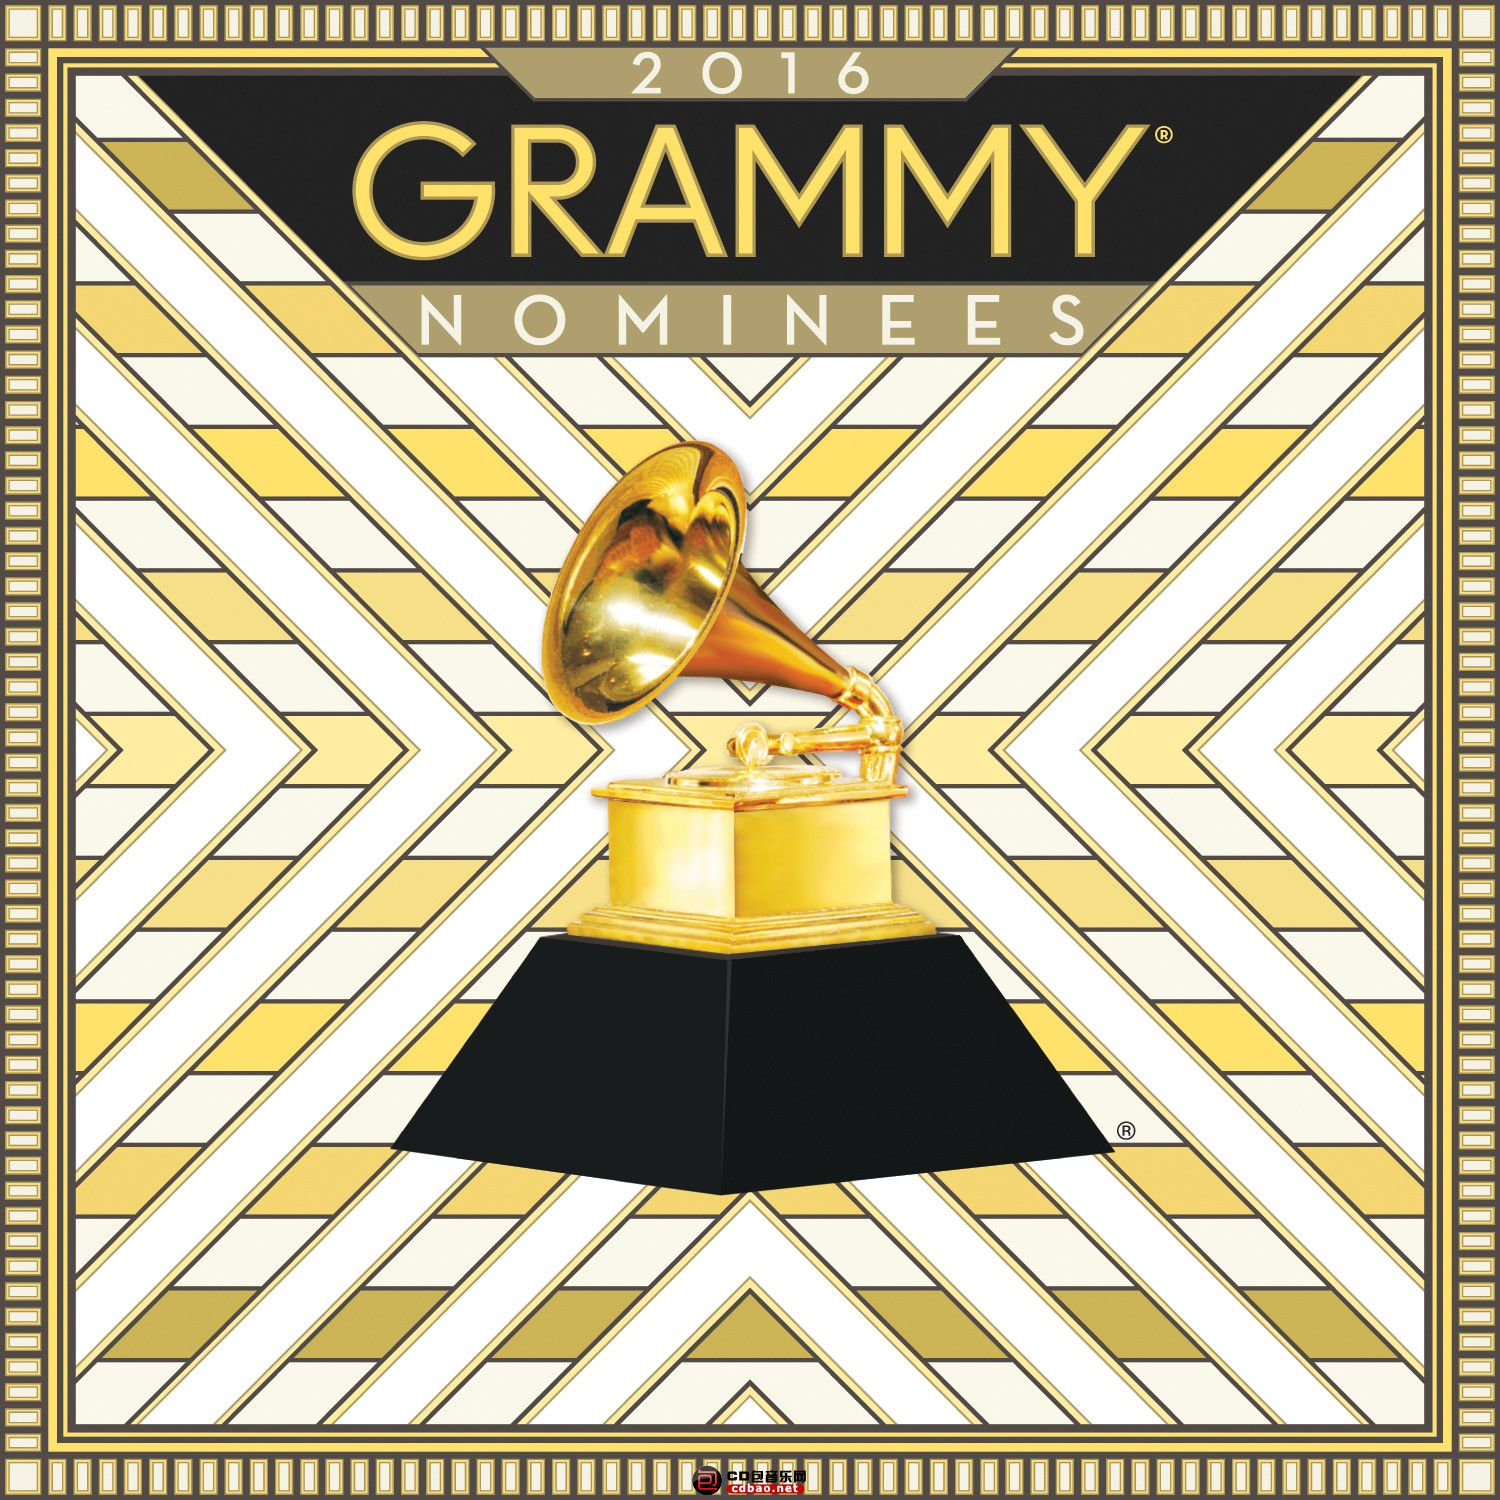 2016 Grammy Nominees.1.jpg